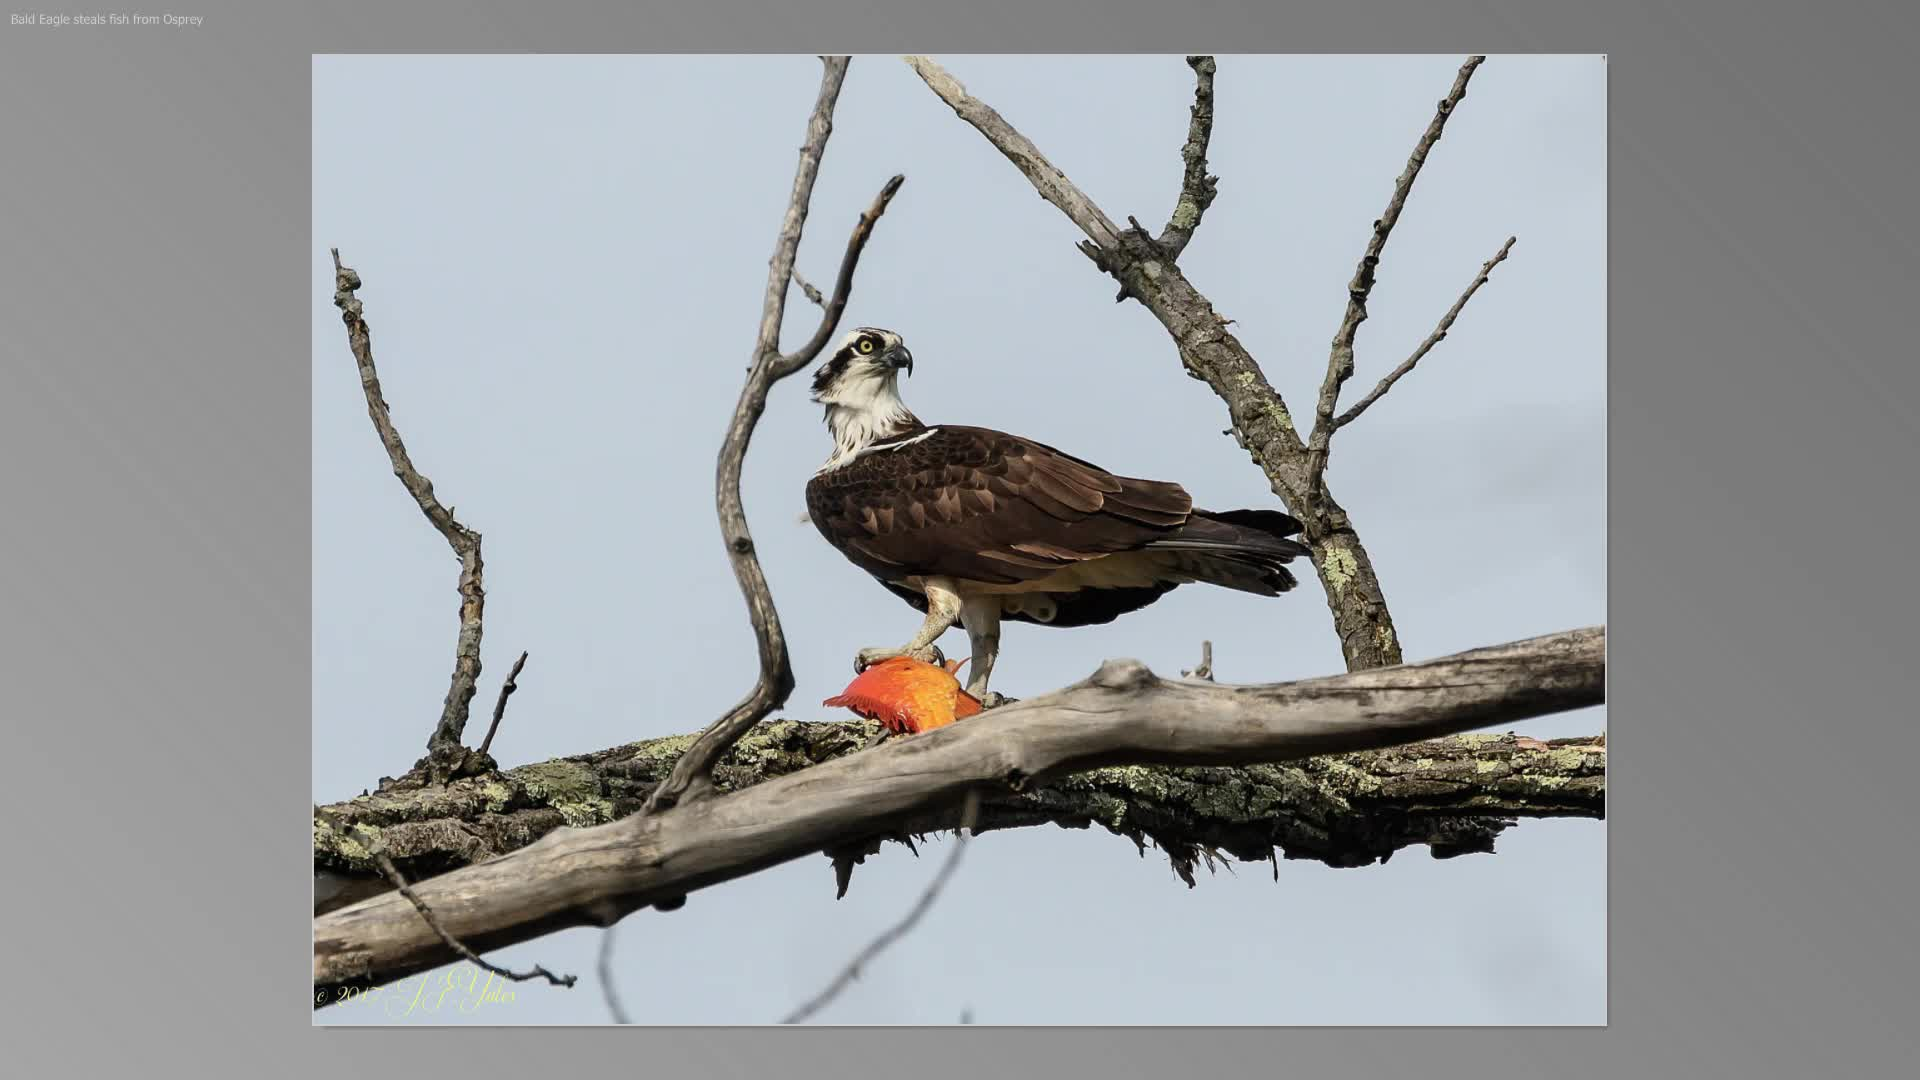 Eagle steals fish from Osprey